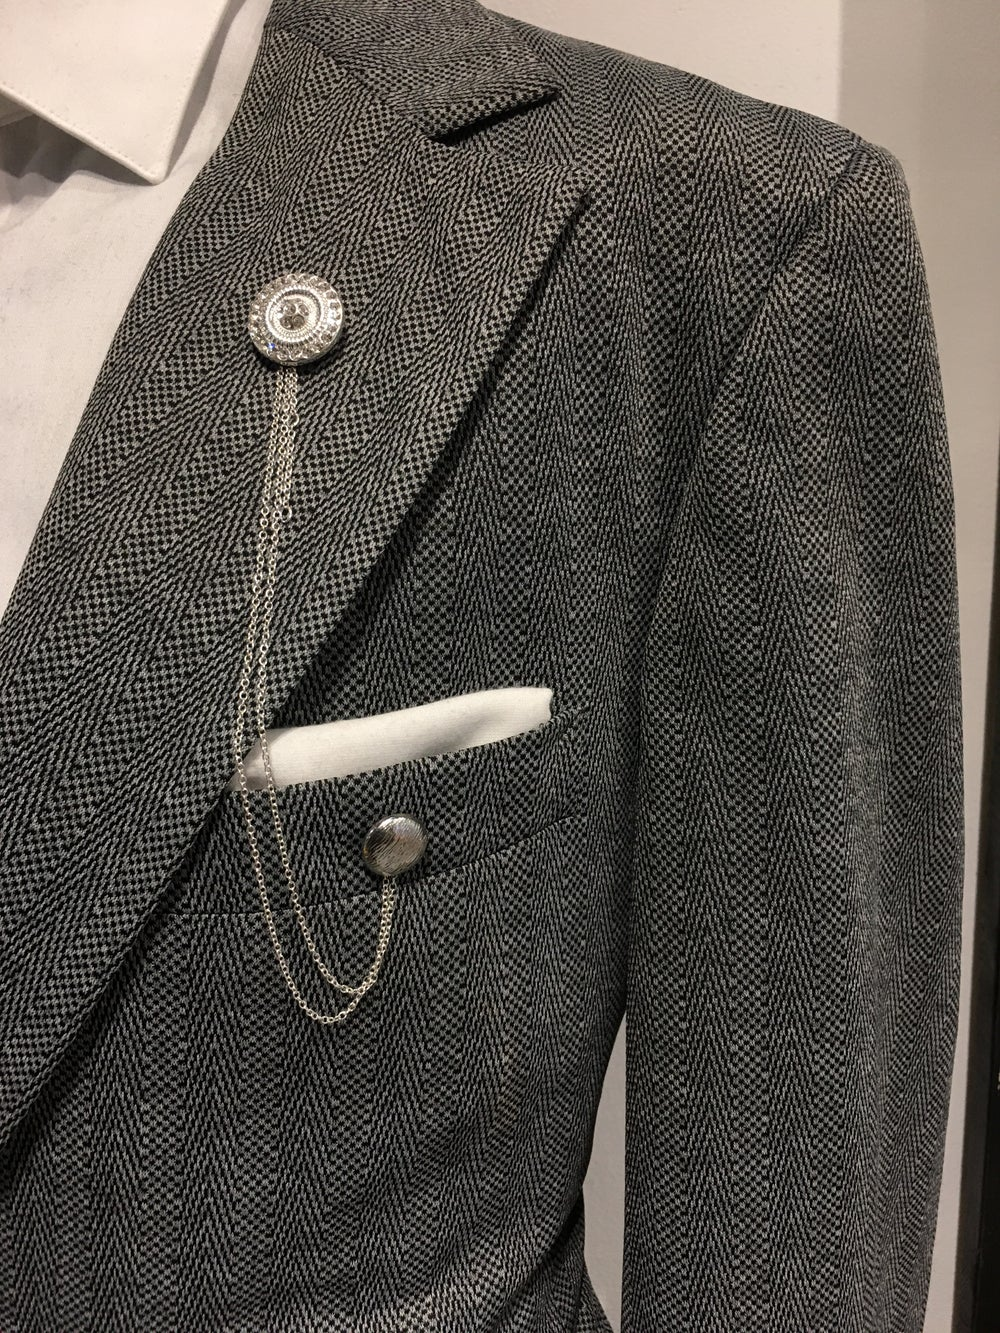 SILVER CHAIN | LUXURY LAPEL PIN